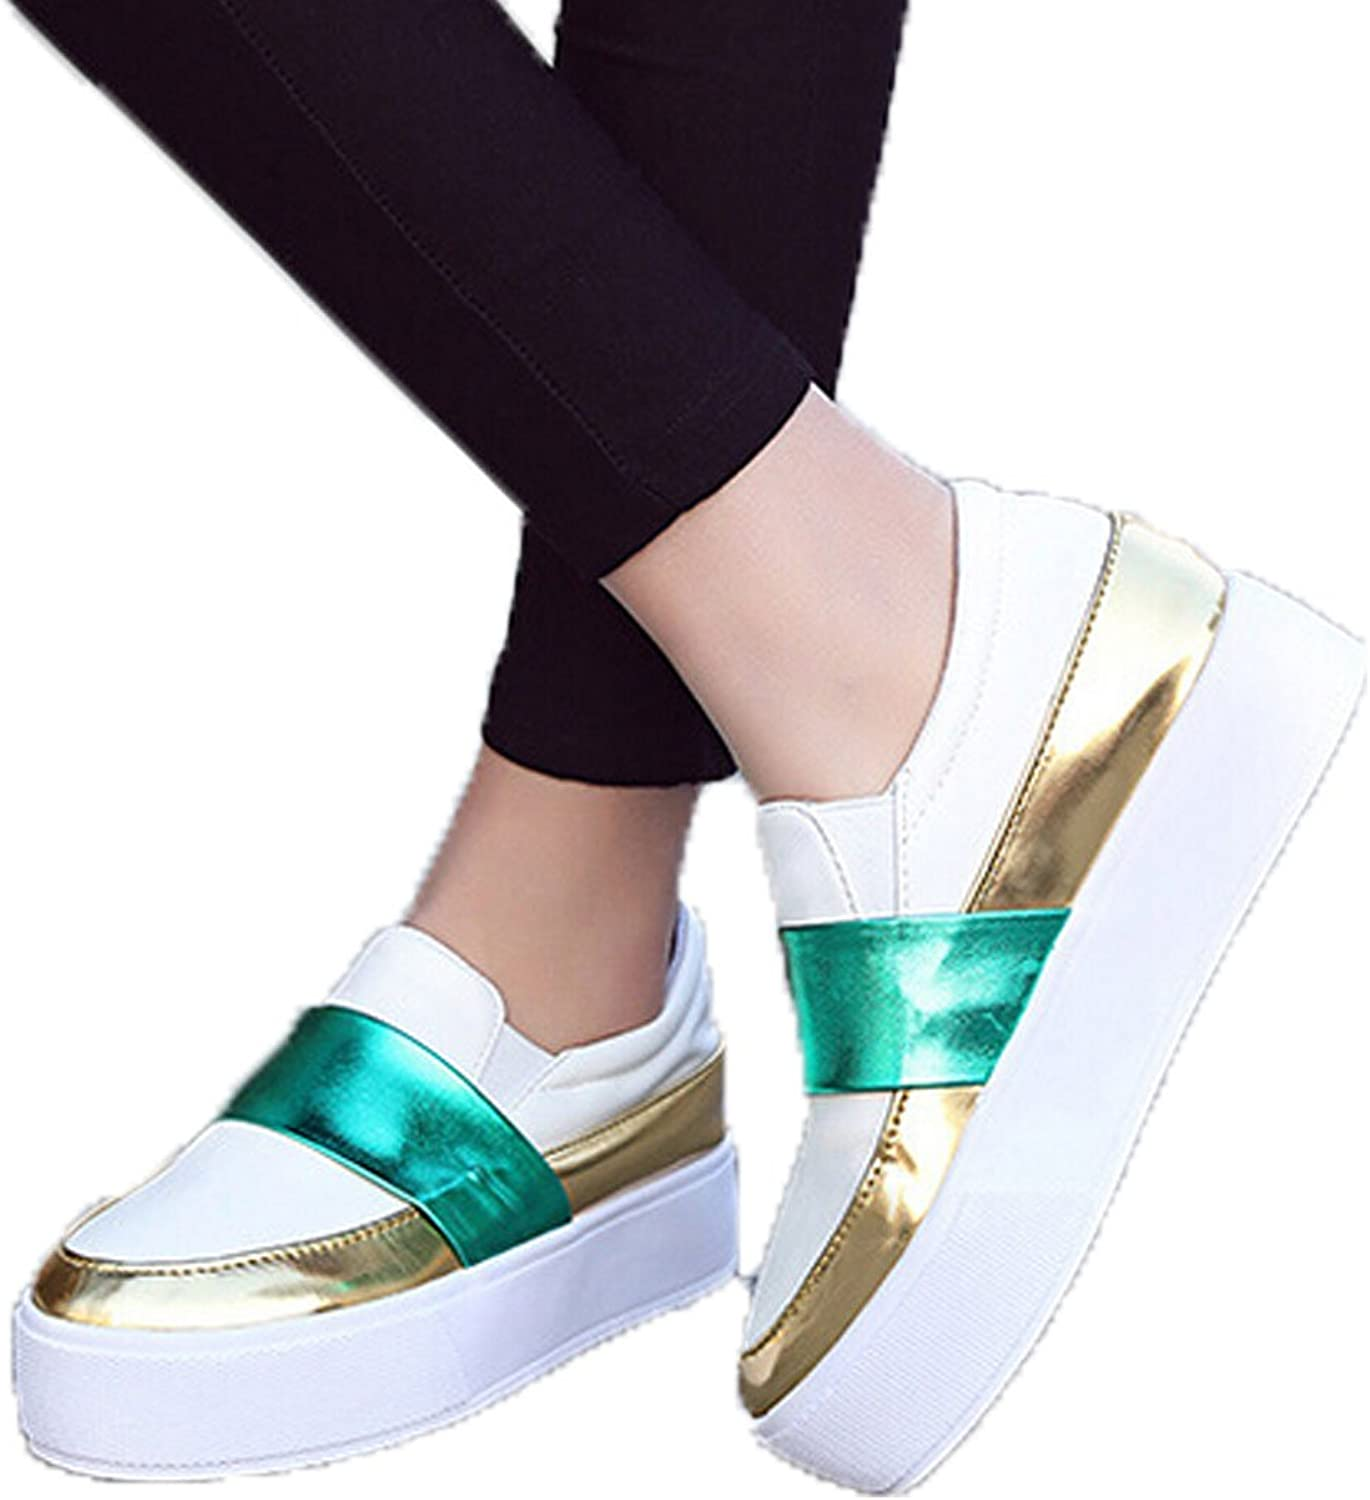 San hojas Loafers Flat Spring Style Casual shoes for Students Black